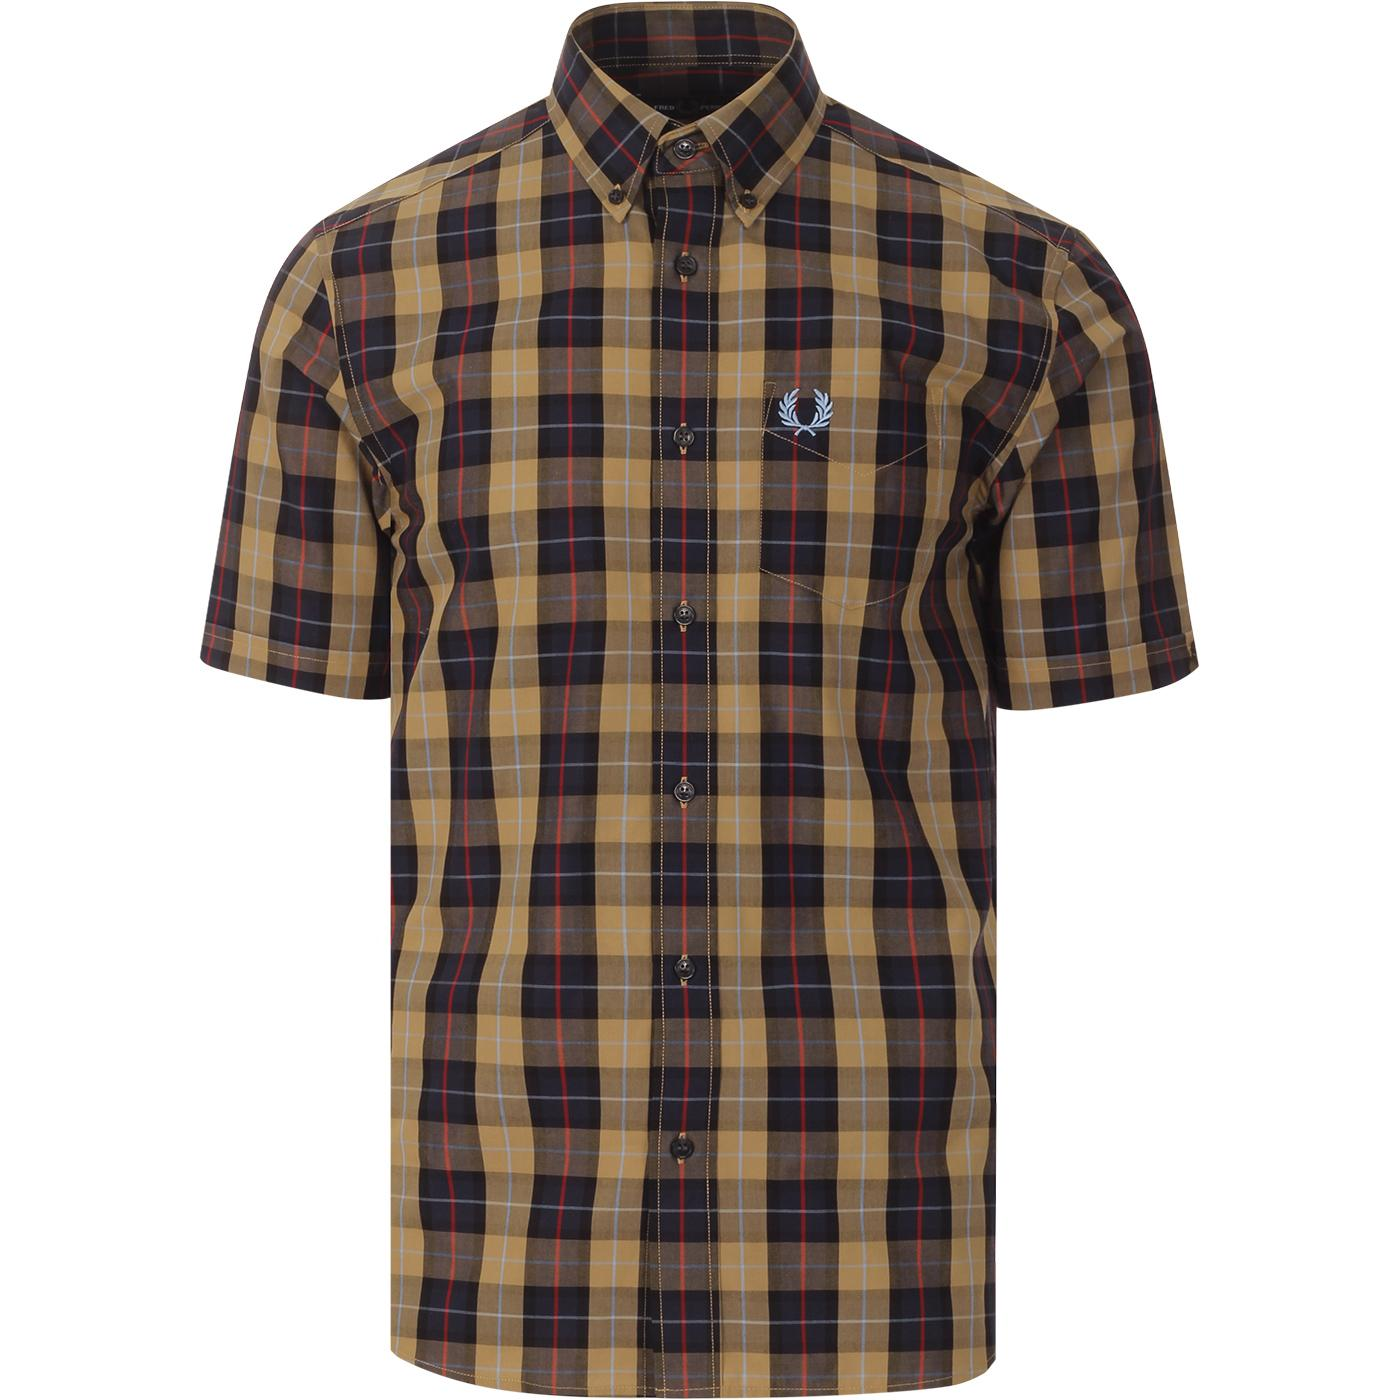 FRED PERRY Mod Plaid Check SS Shirt (Navy)